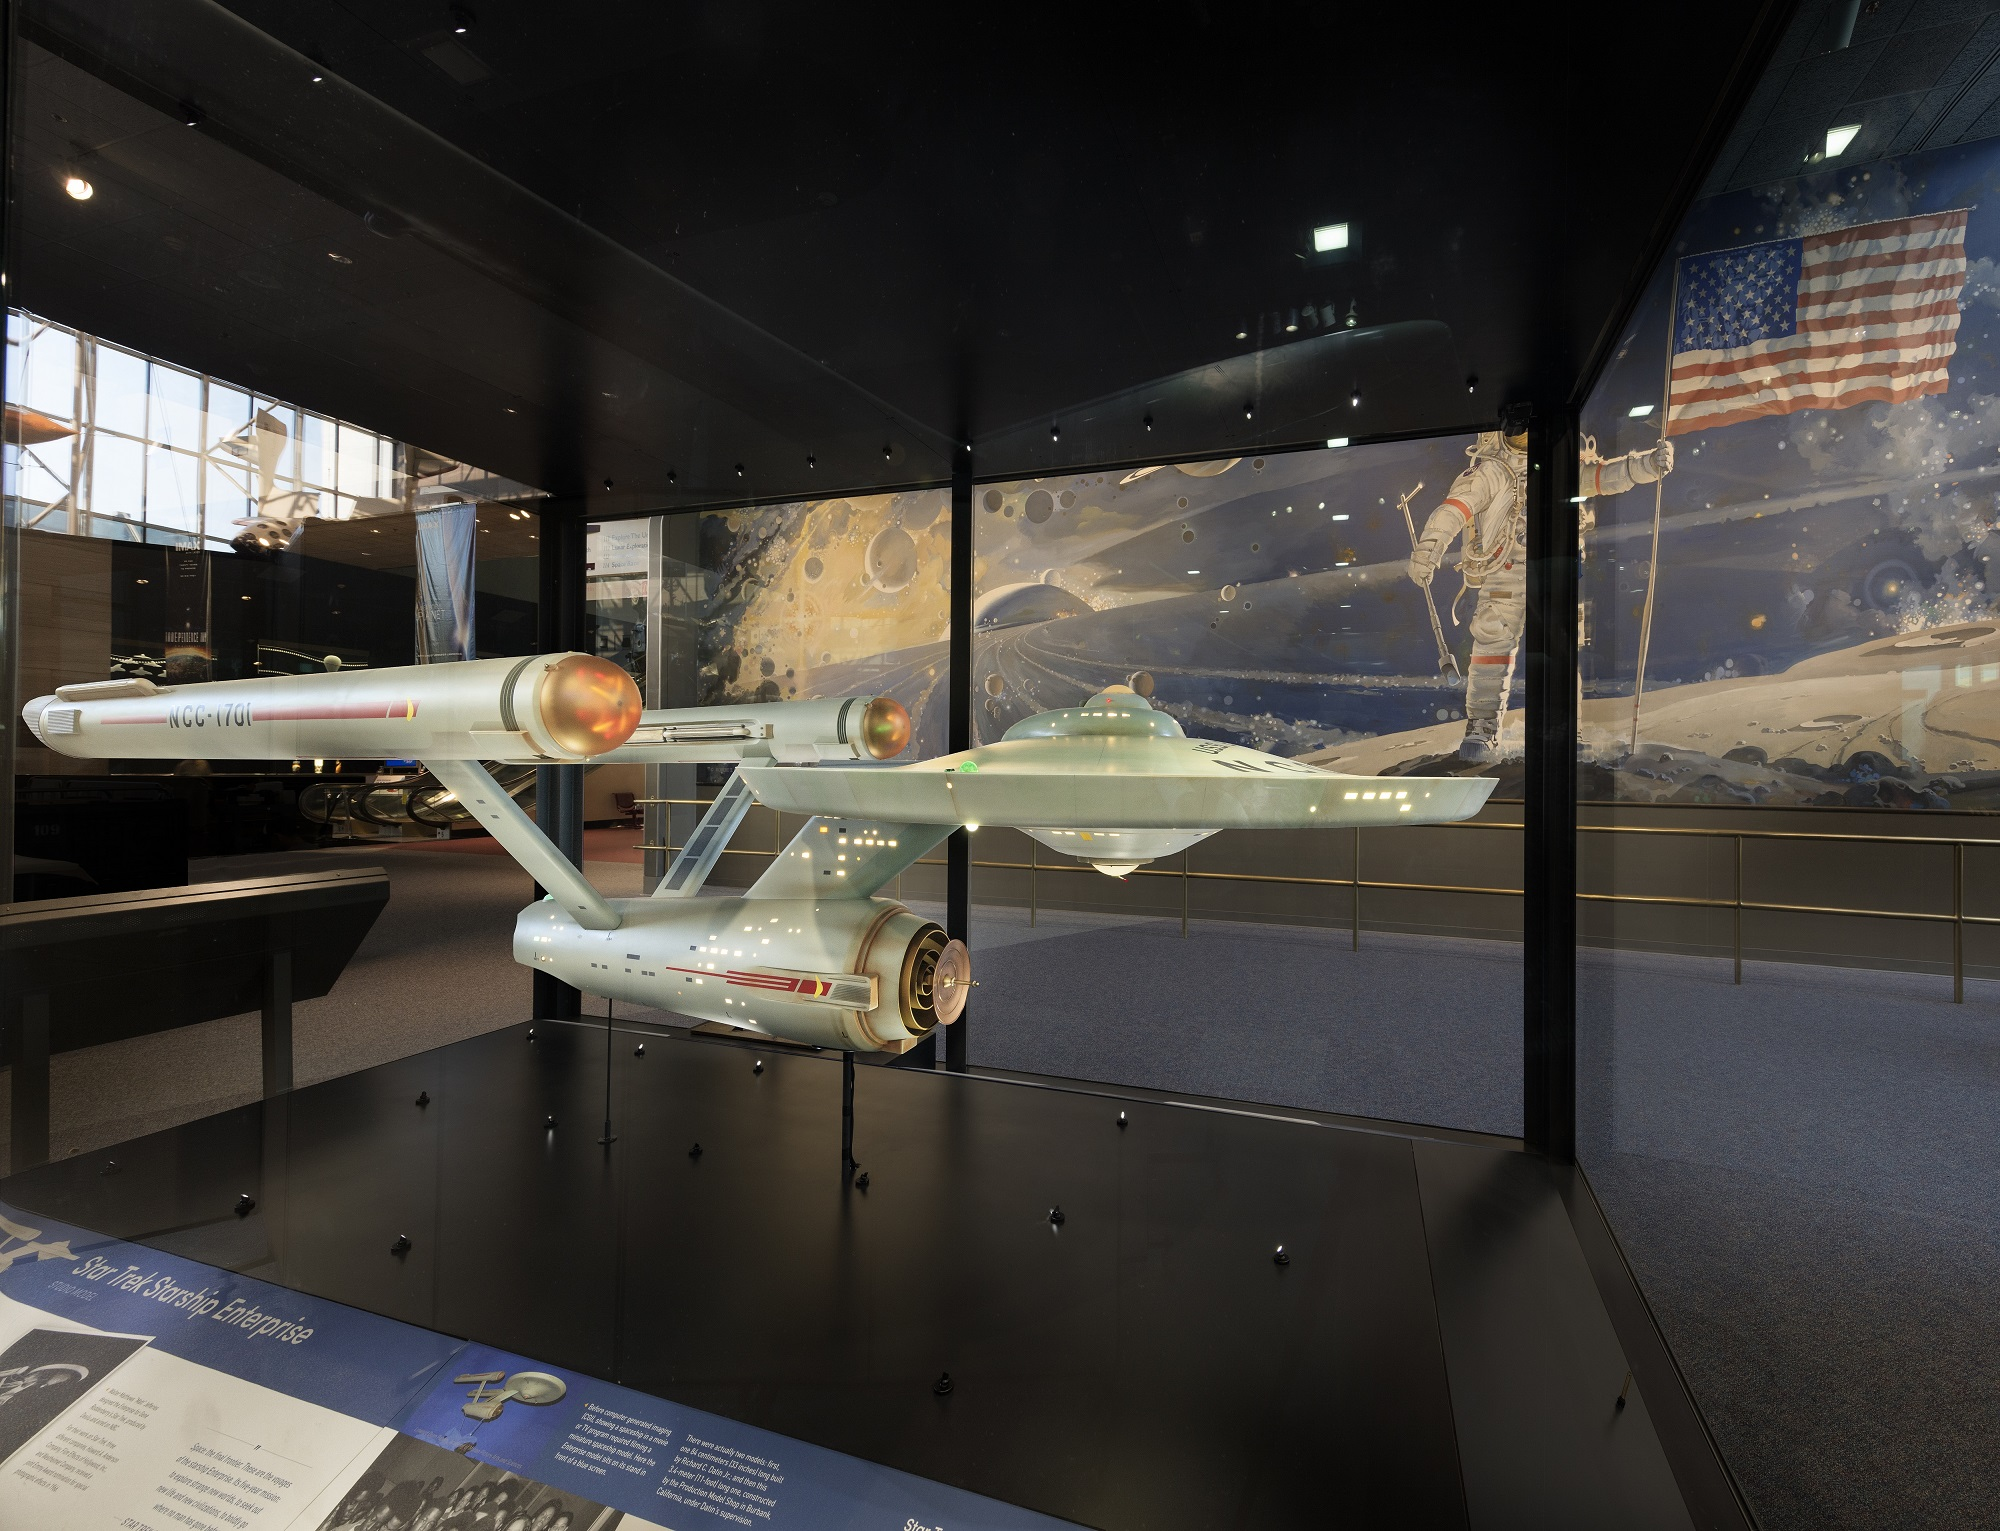 """The USS Enterprise from the original """"Star Trek"""" TV series is seen fully restored and on display at the Smithsonian's National Air and Space Museum in Washington, D.C."""